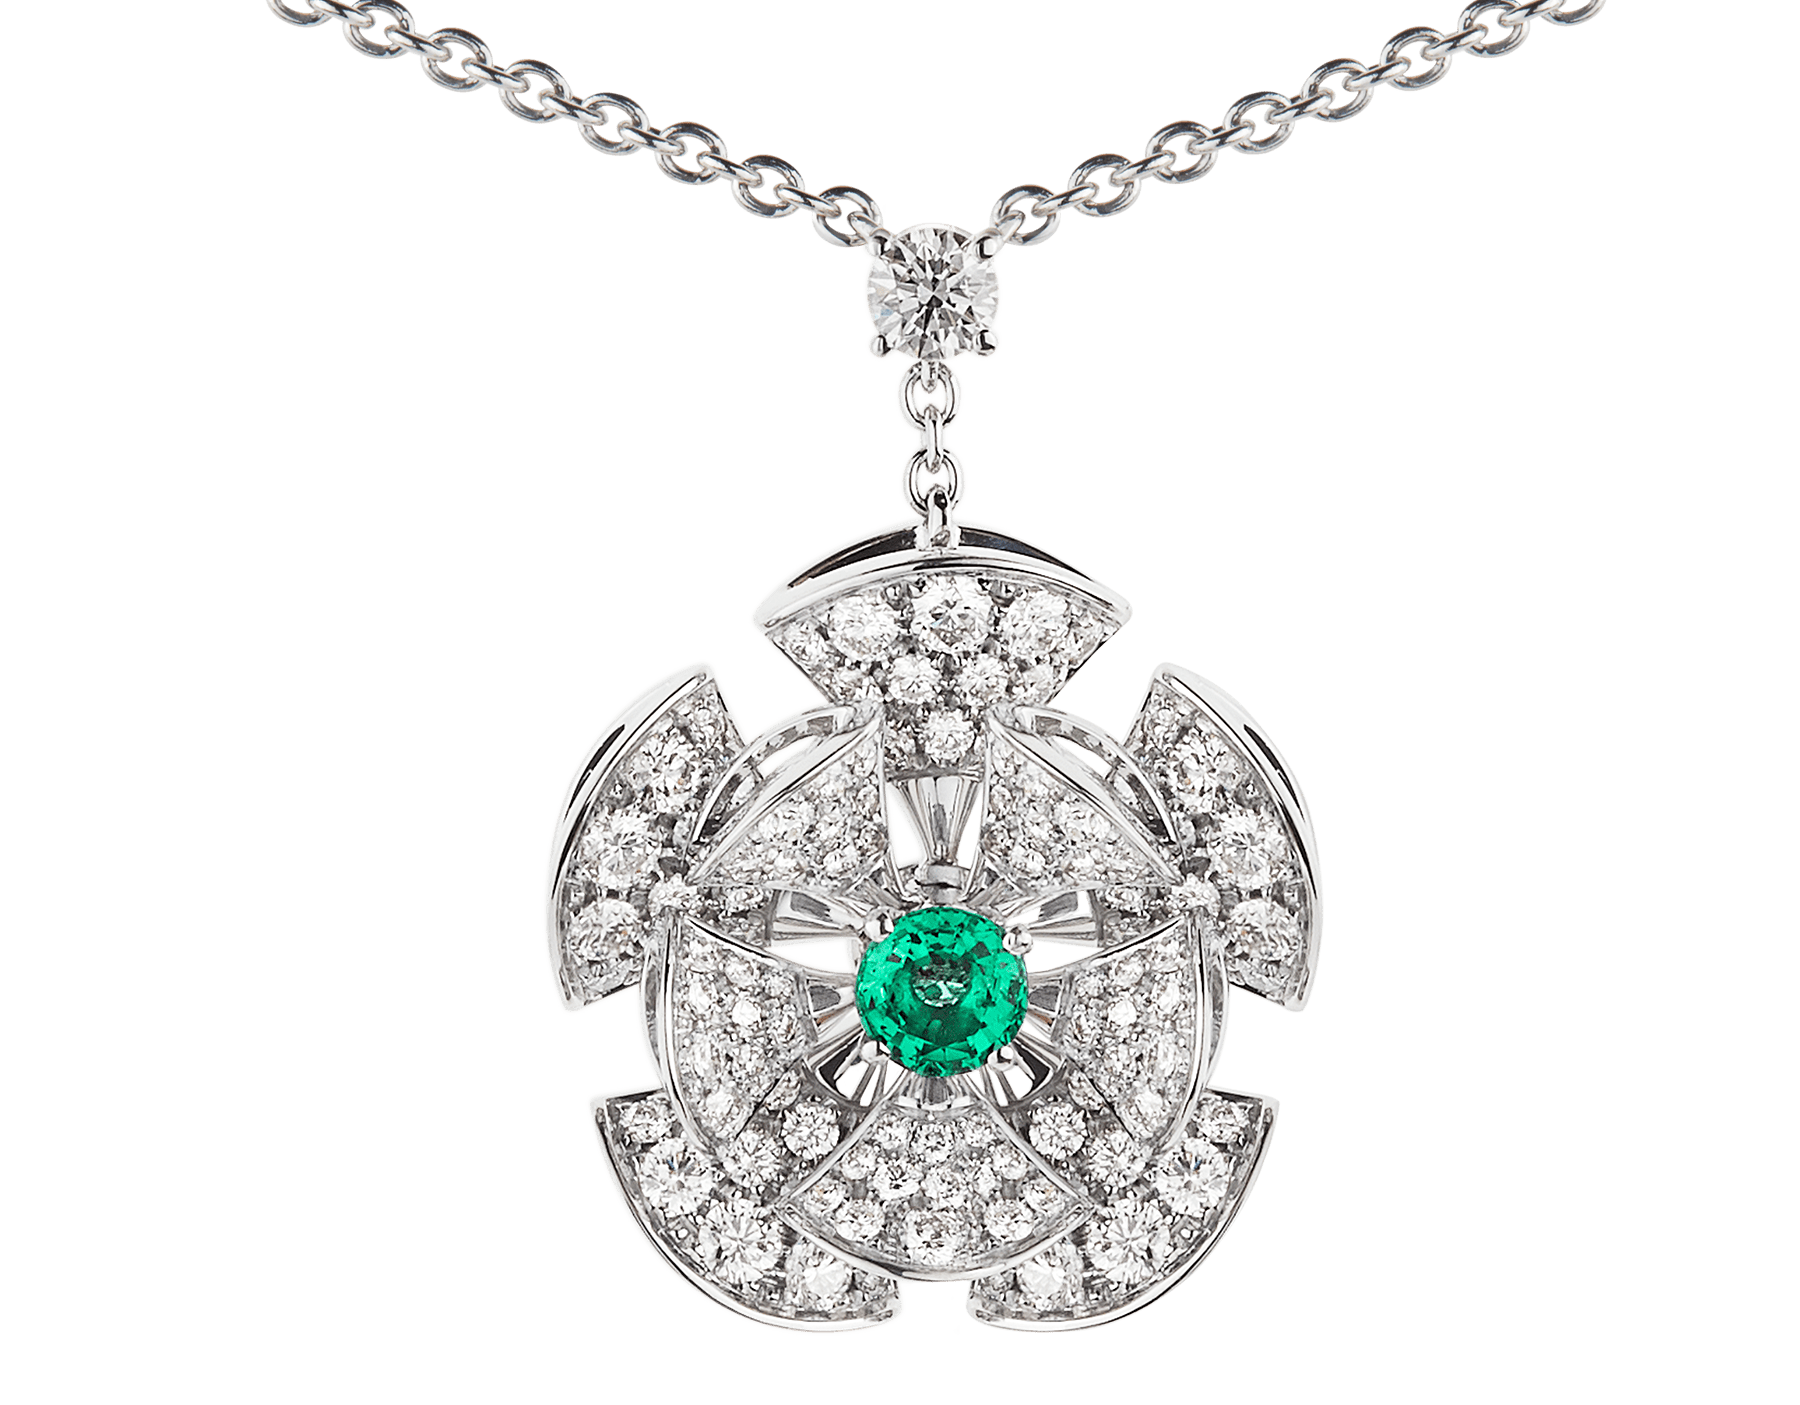 DIVAS' DREAM necklace in 18 kt white gold with chain set with emeralds and a diamond, and a pendant set with a central emerald and pavé diamonds. 352626 image 3